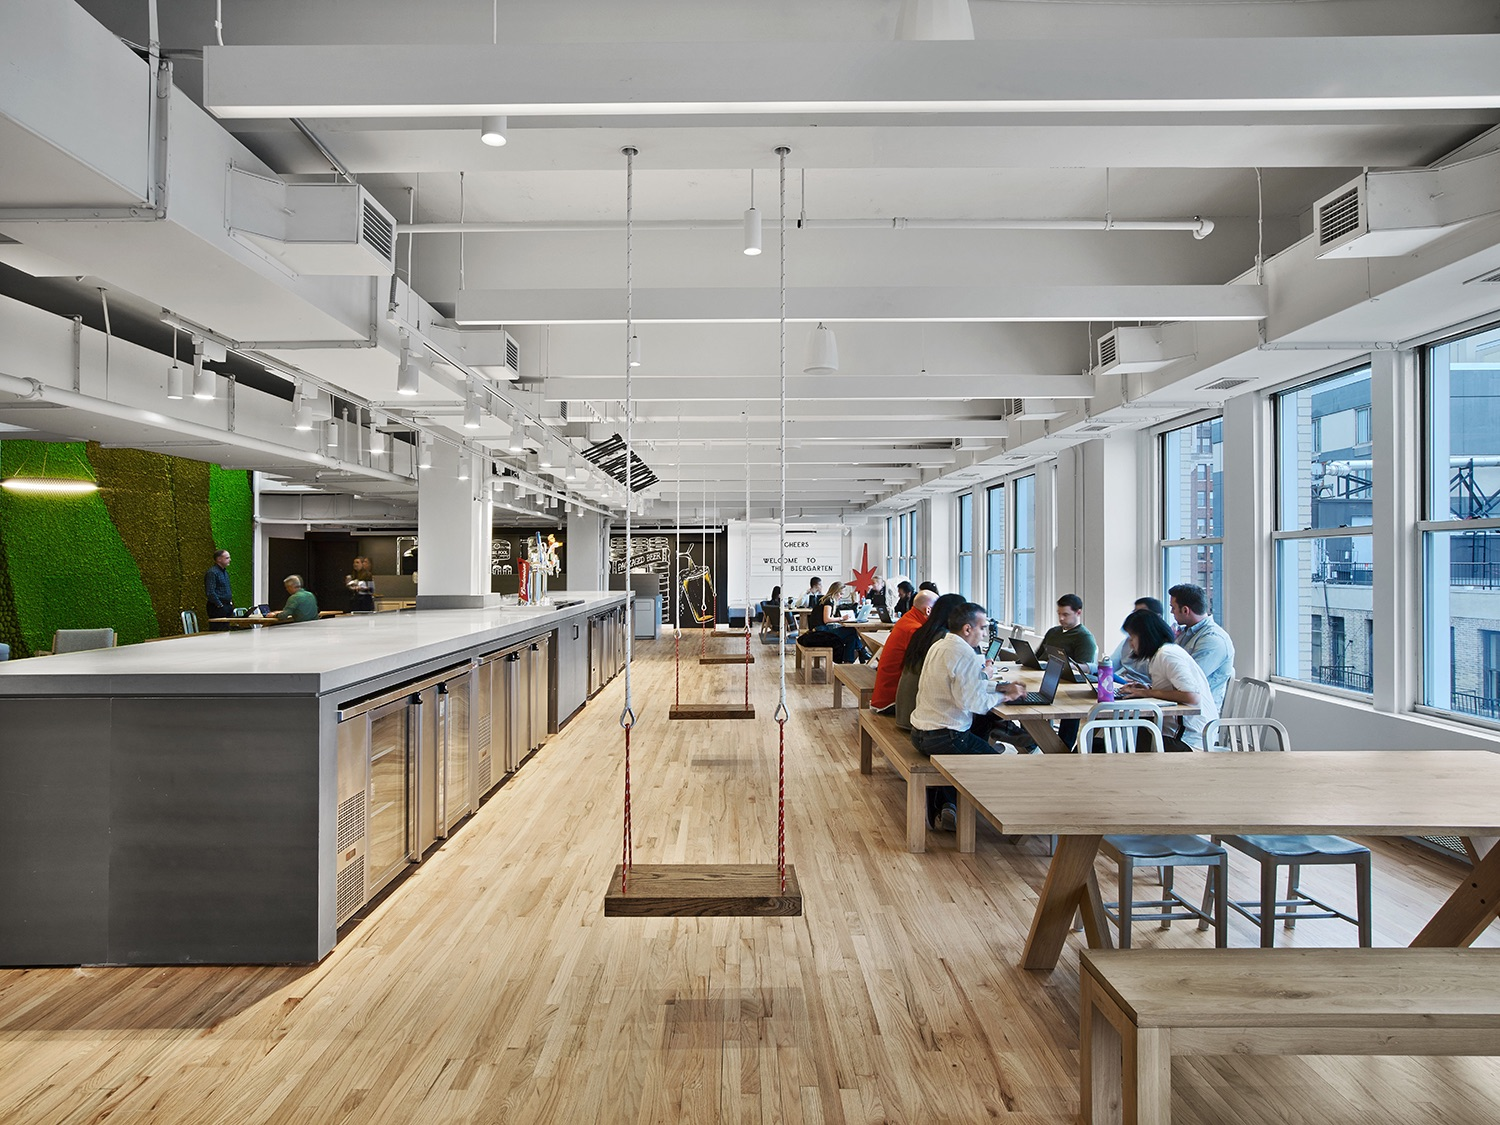 anheuser-busch-nyc-office-18